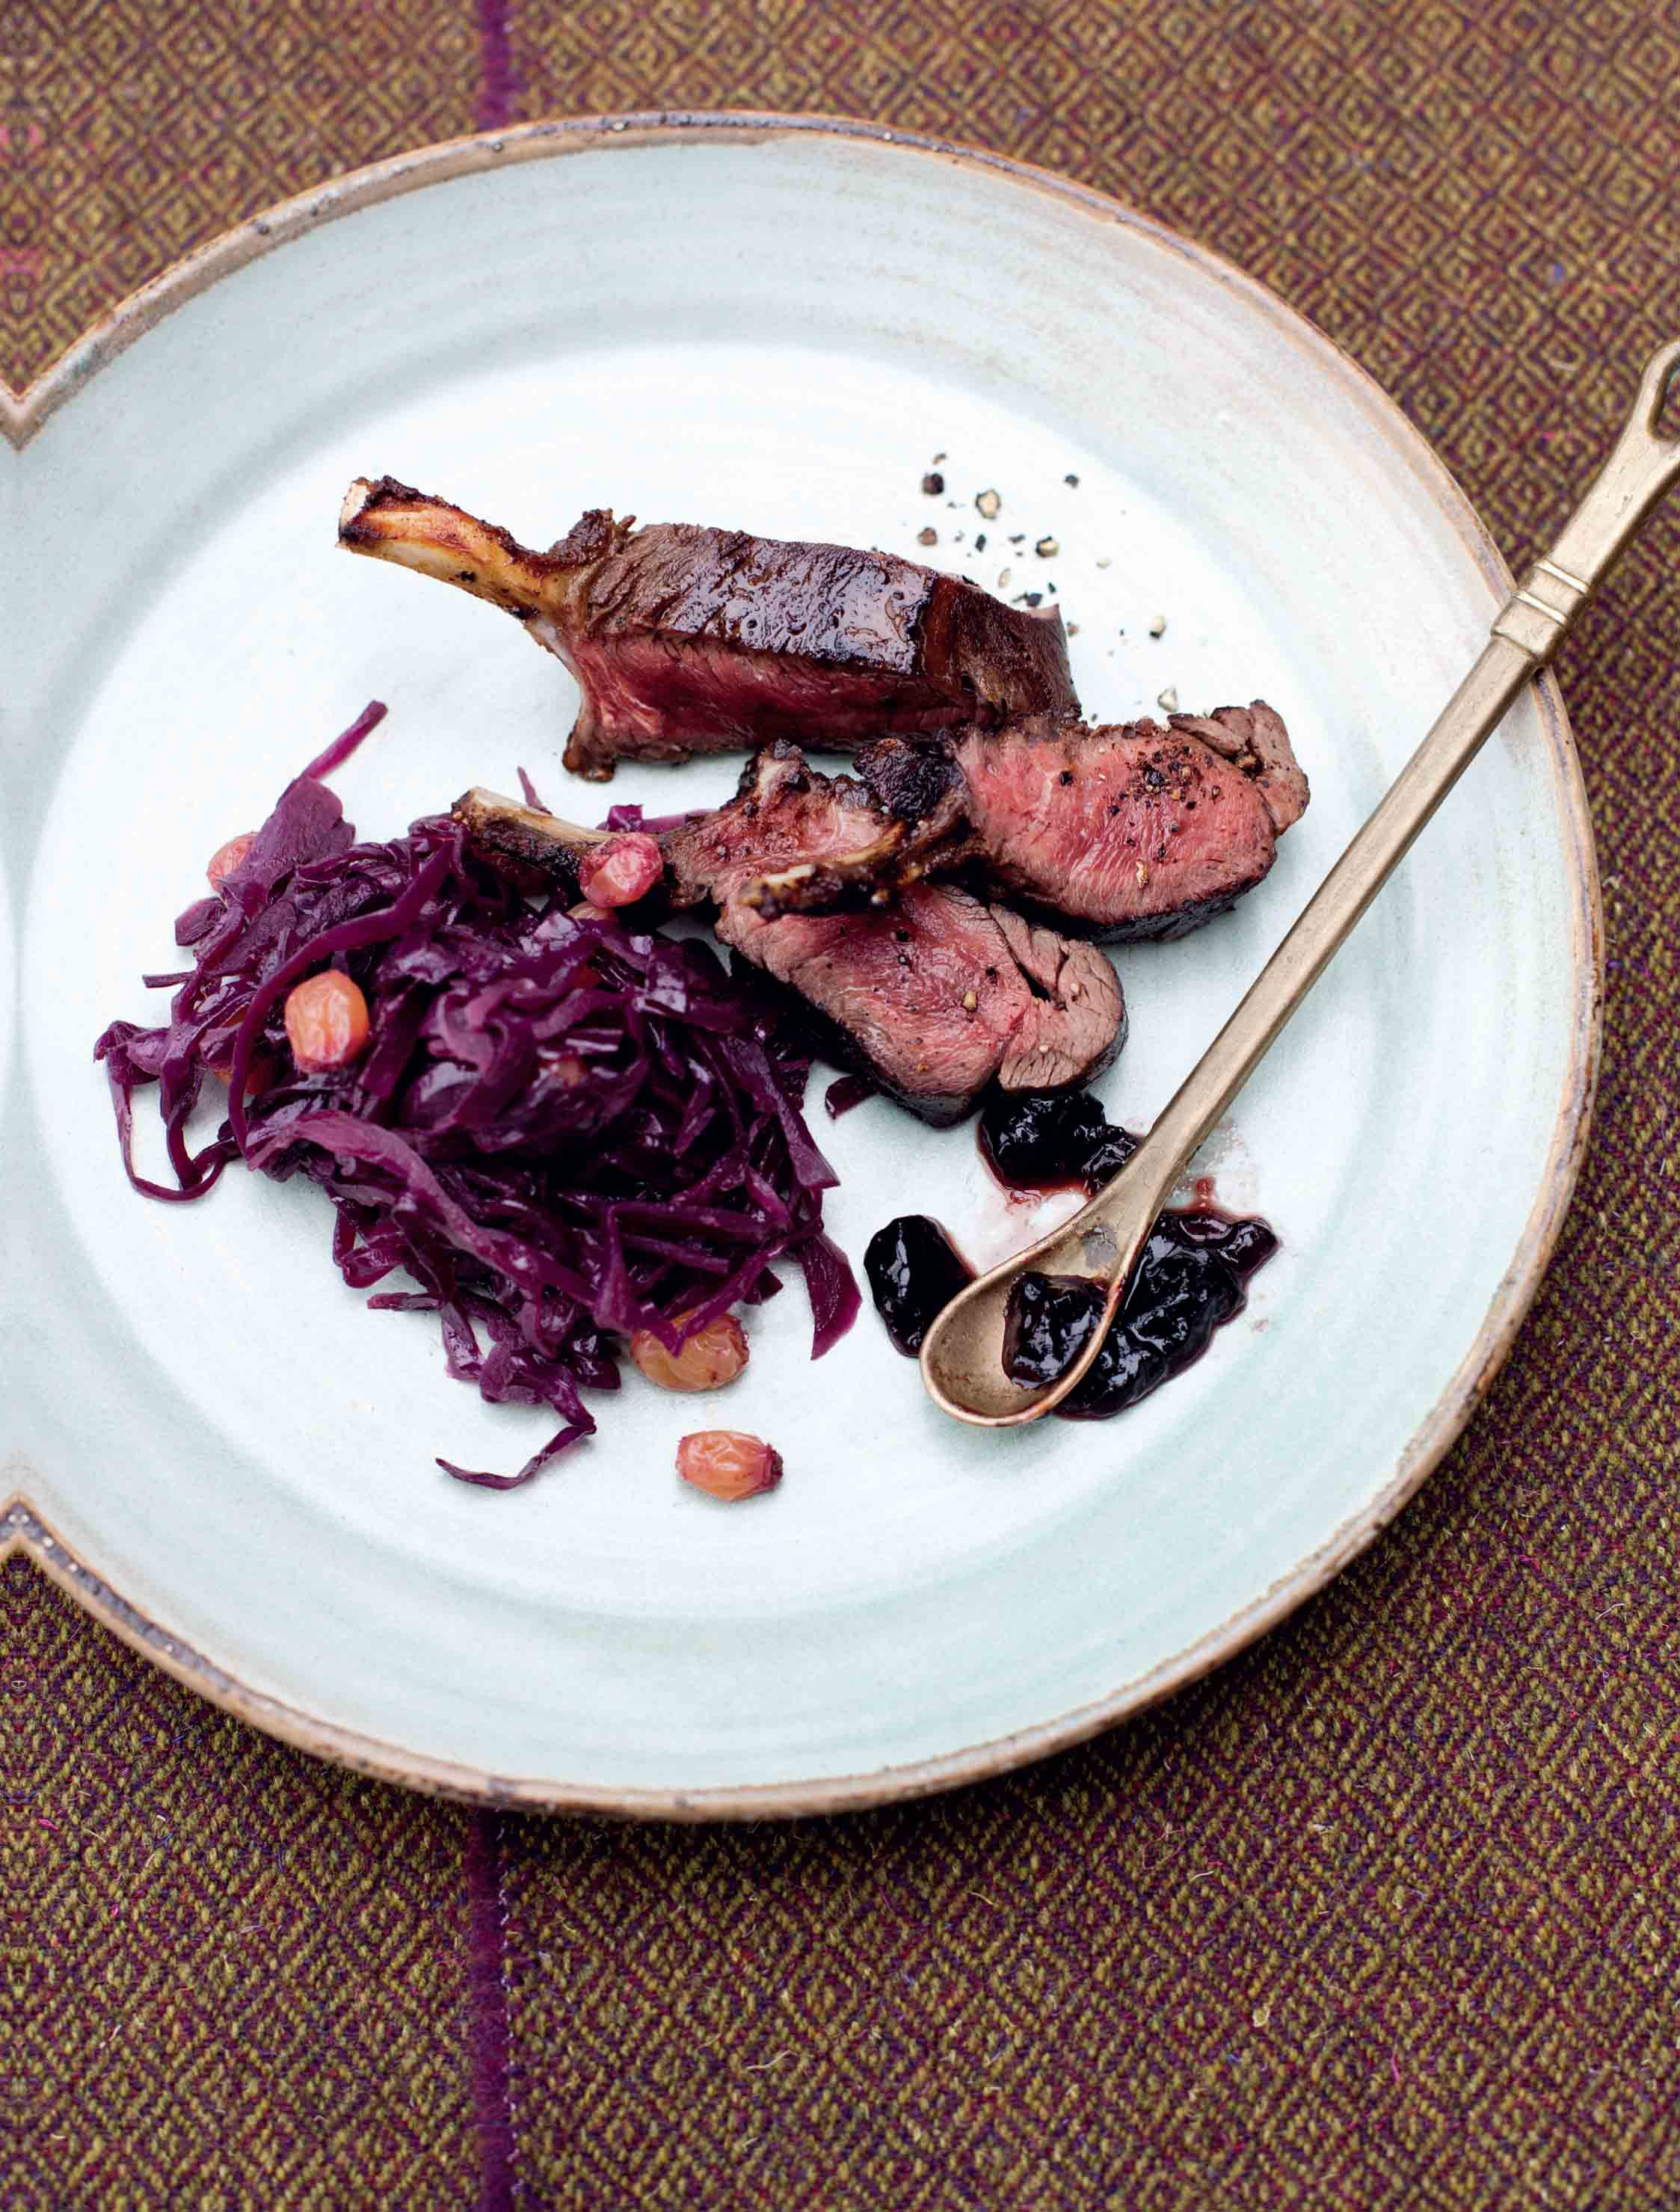 Roasted rack of venison with spiced red cabbage